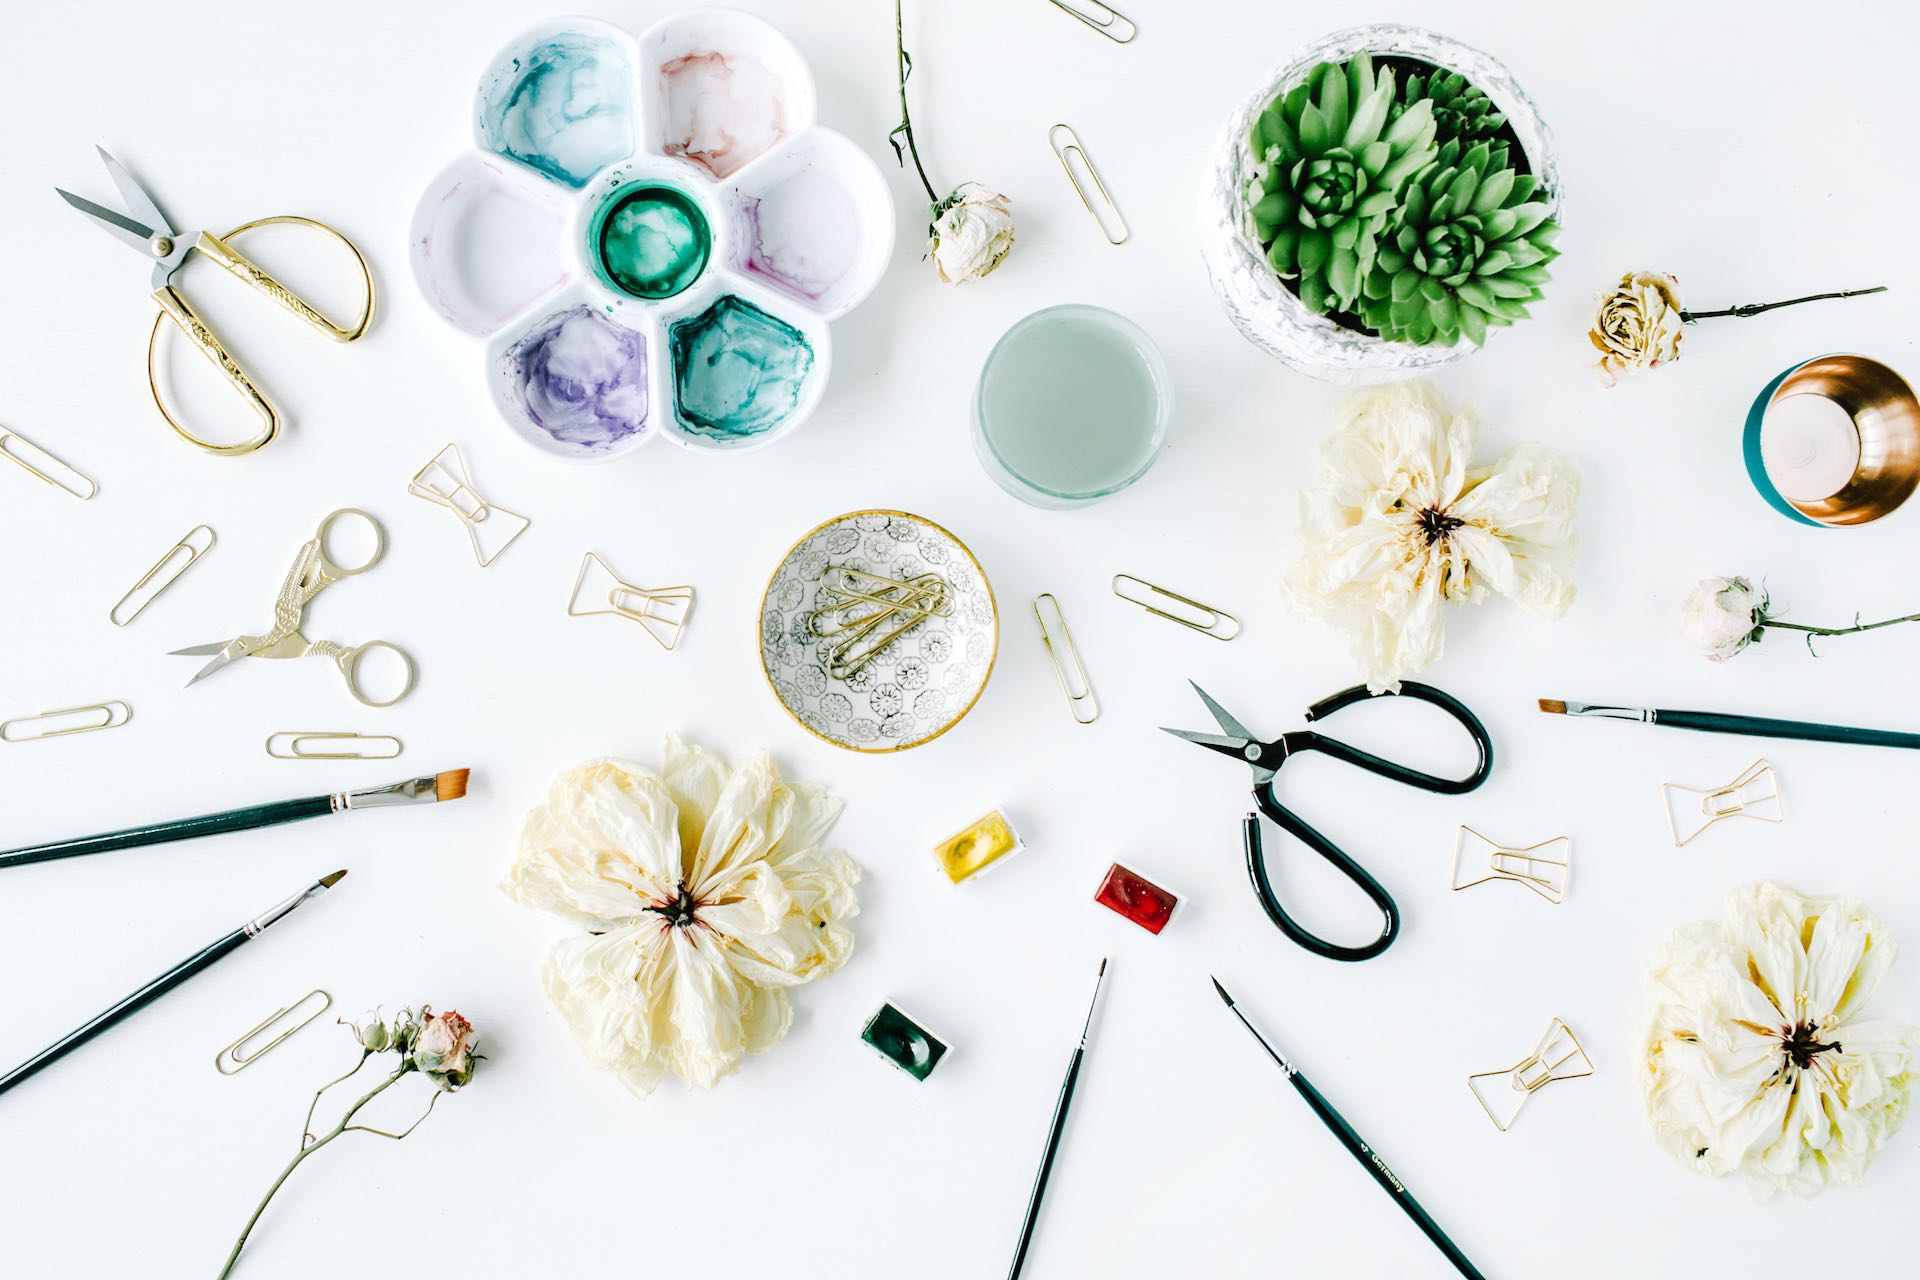 9 Hobbies to try in Recovery 2